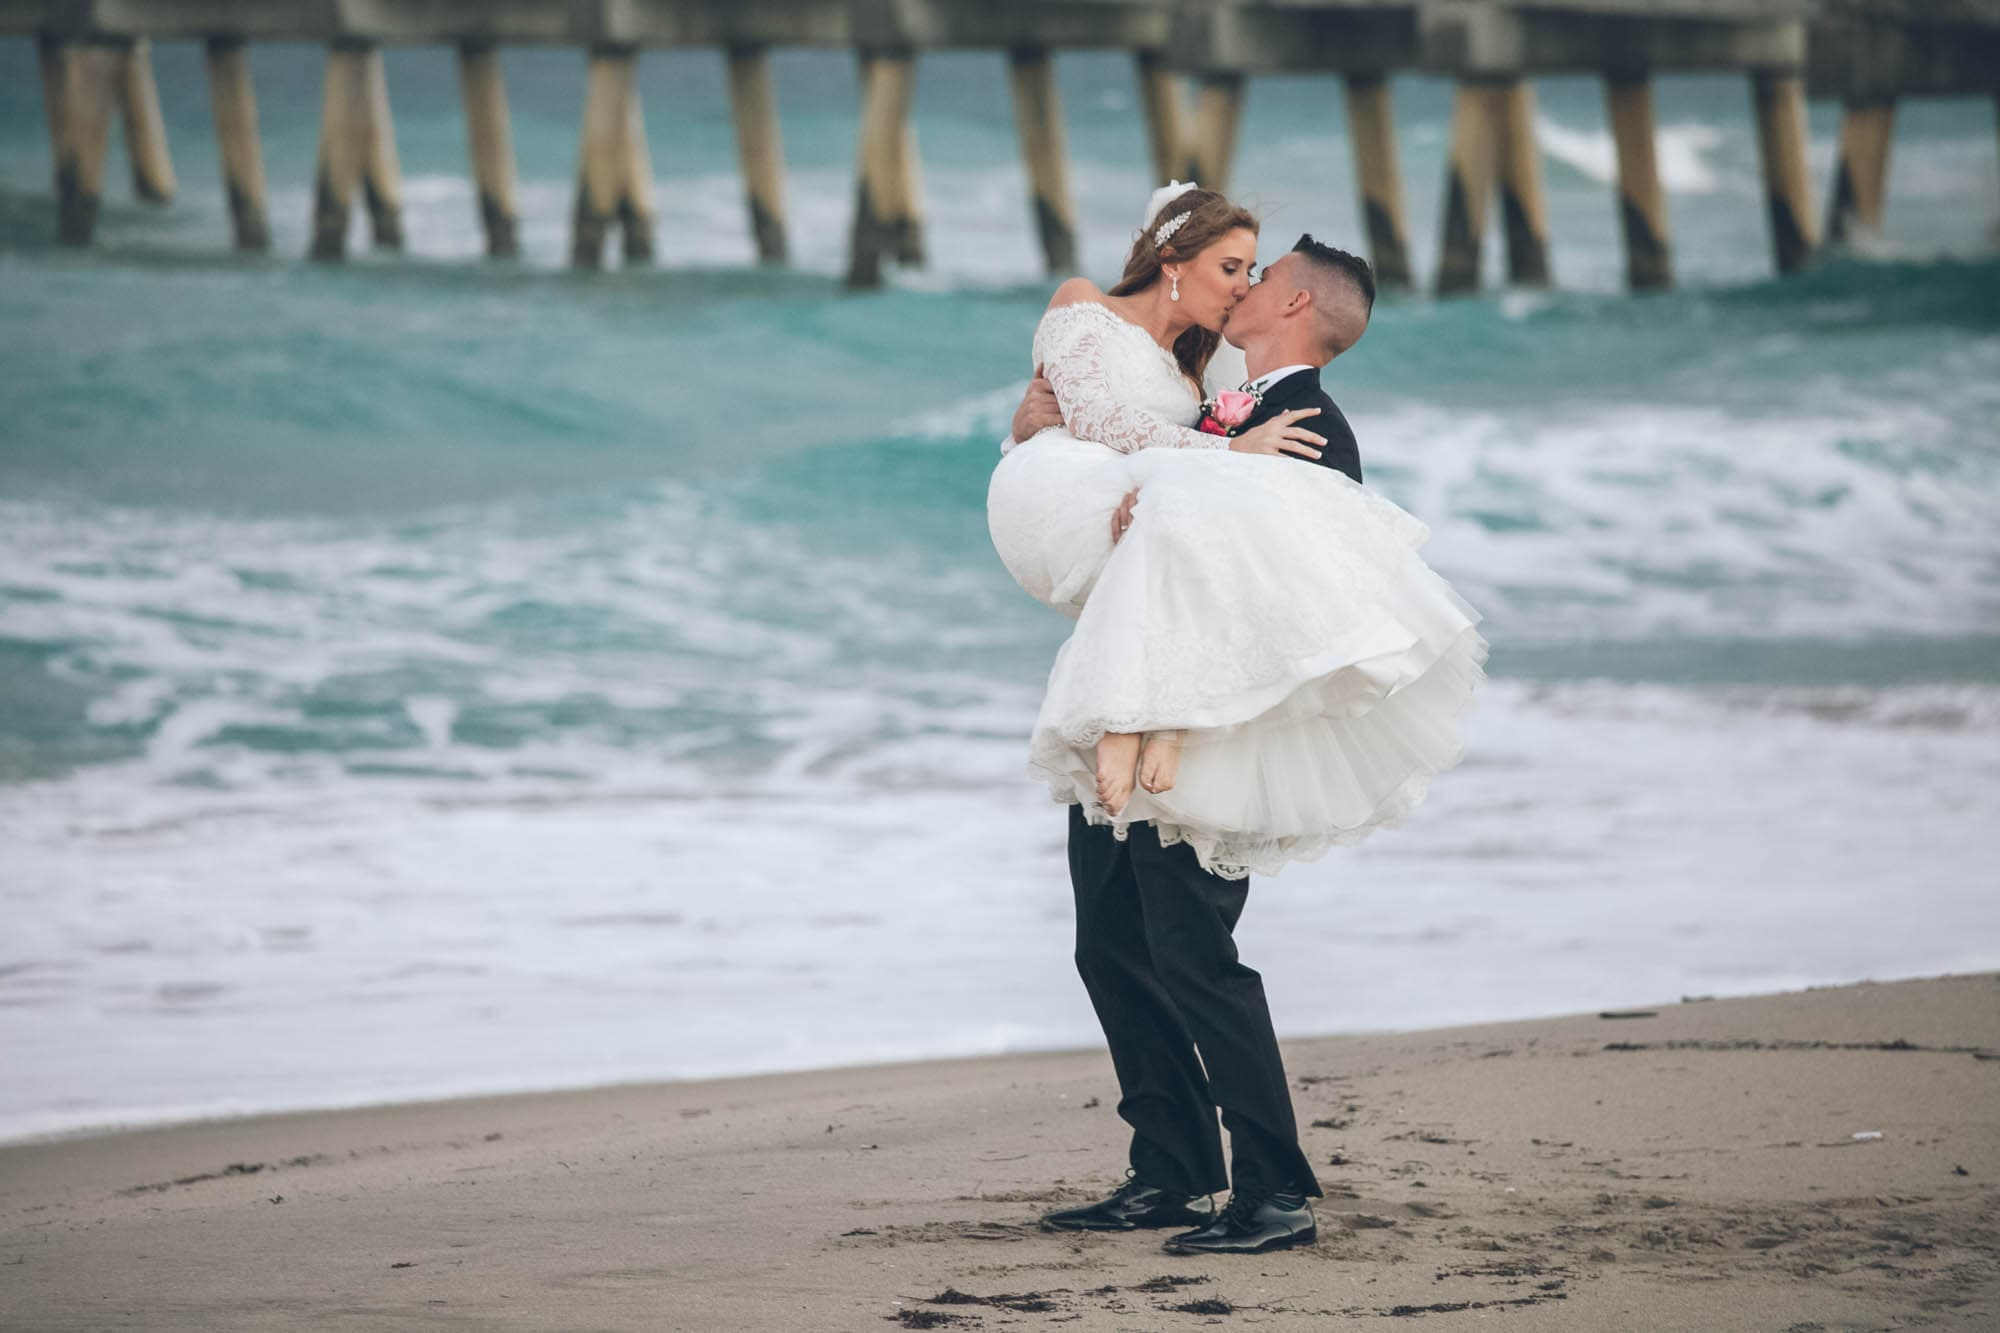 newlywed groom kissing bride at a beach, photographed by Eivan's in Miami